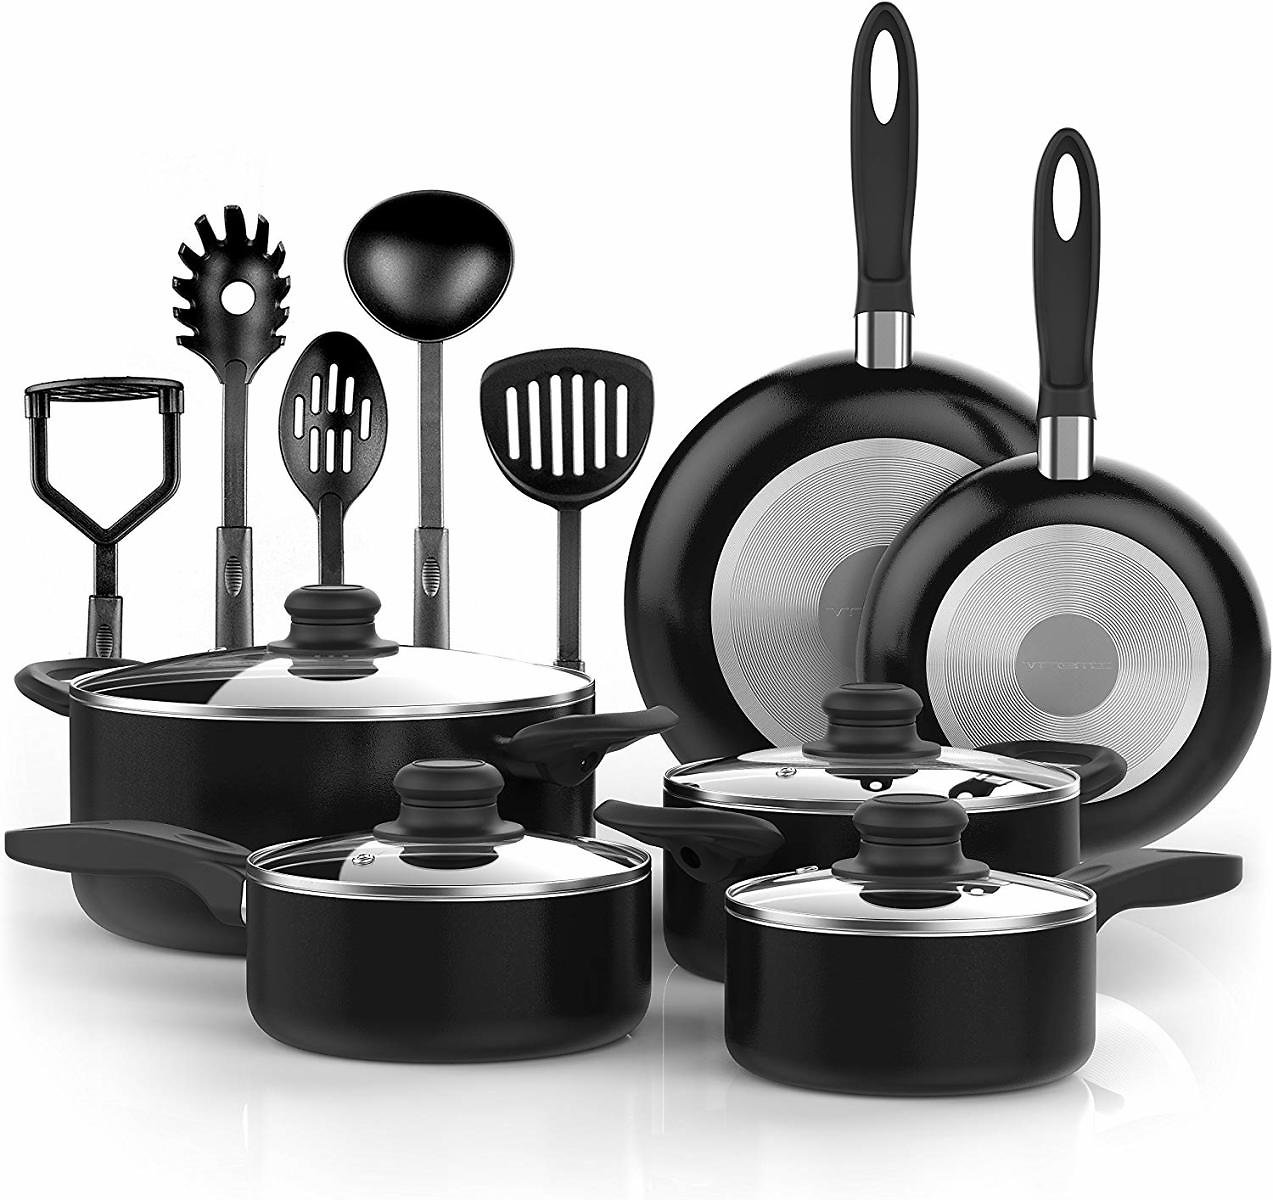 Vremi Nonstick Cookware Set Aluminum Pots and Pans with Cooking Utensils 15 Piece